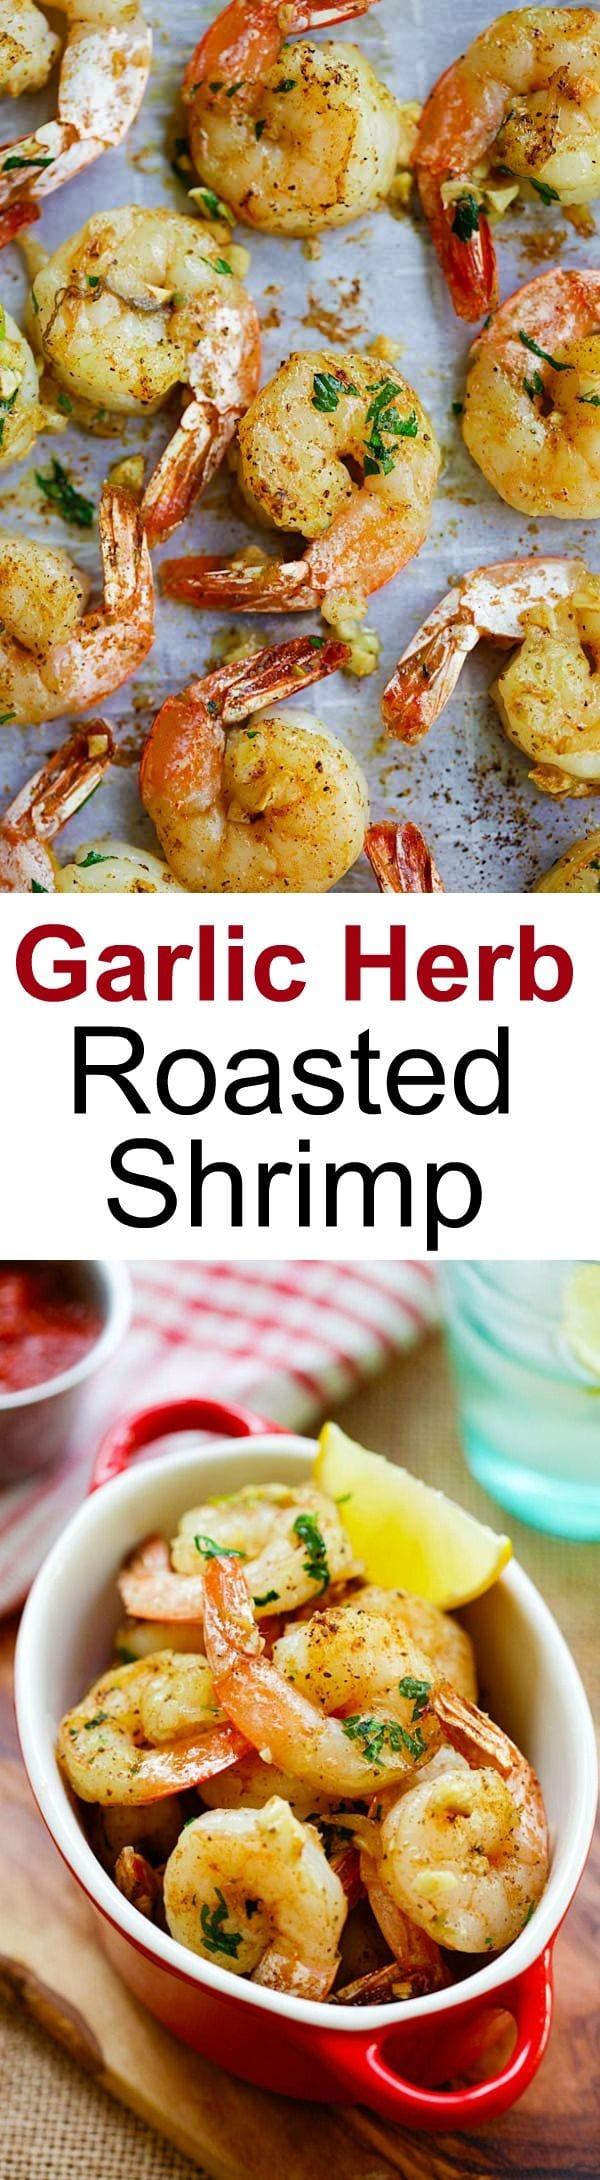 Garlic Herb Roasted Shrimp - easiest  and best roasted shrimp with butter, garlic, herb and serve with cocktail sauce. Takes 15 mins | rasamalaysia.com